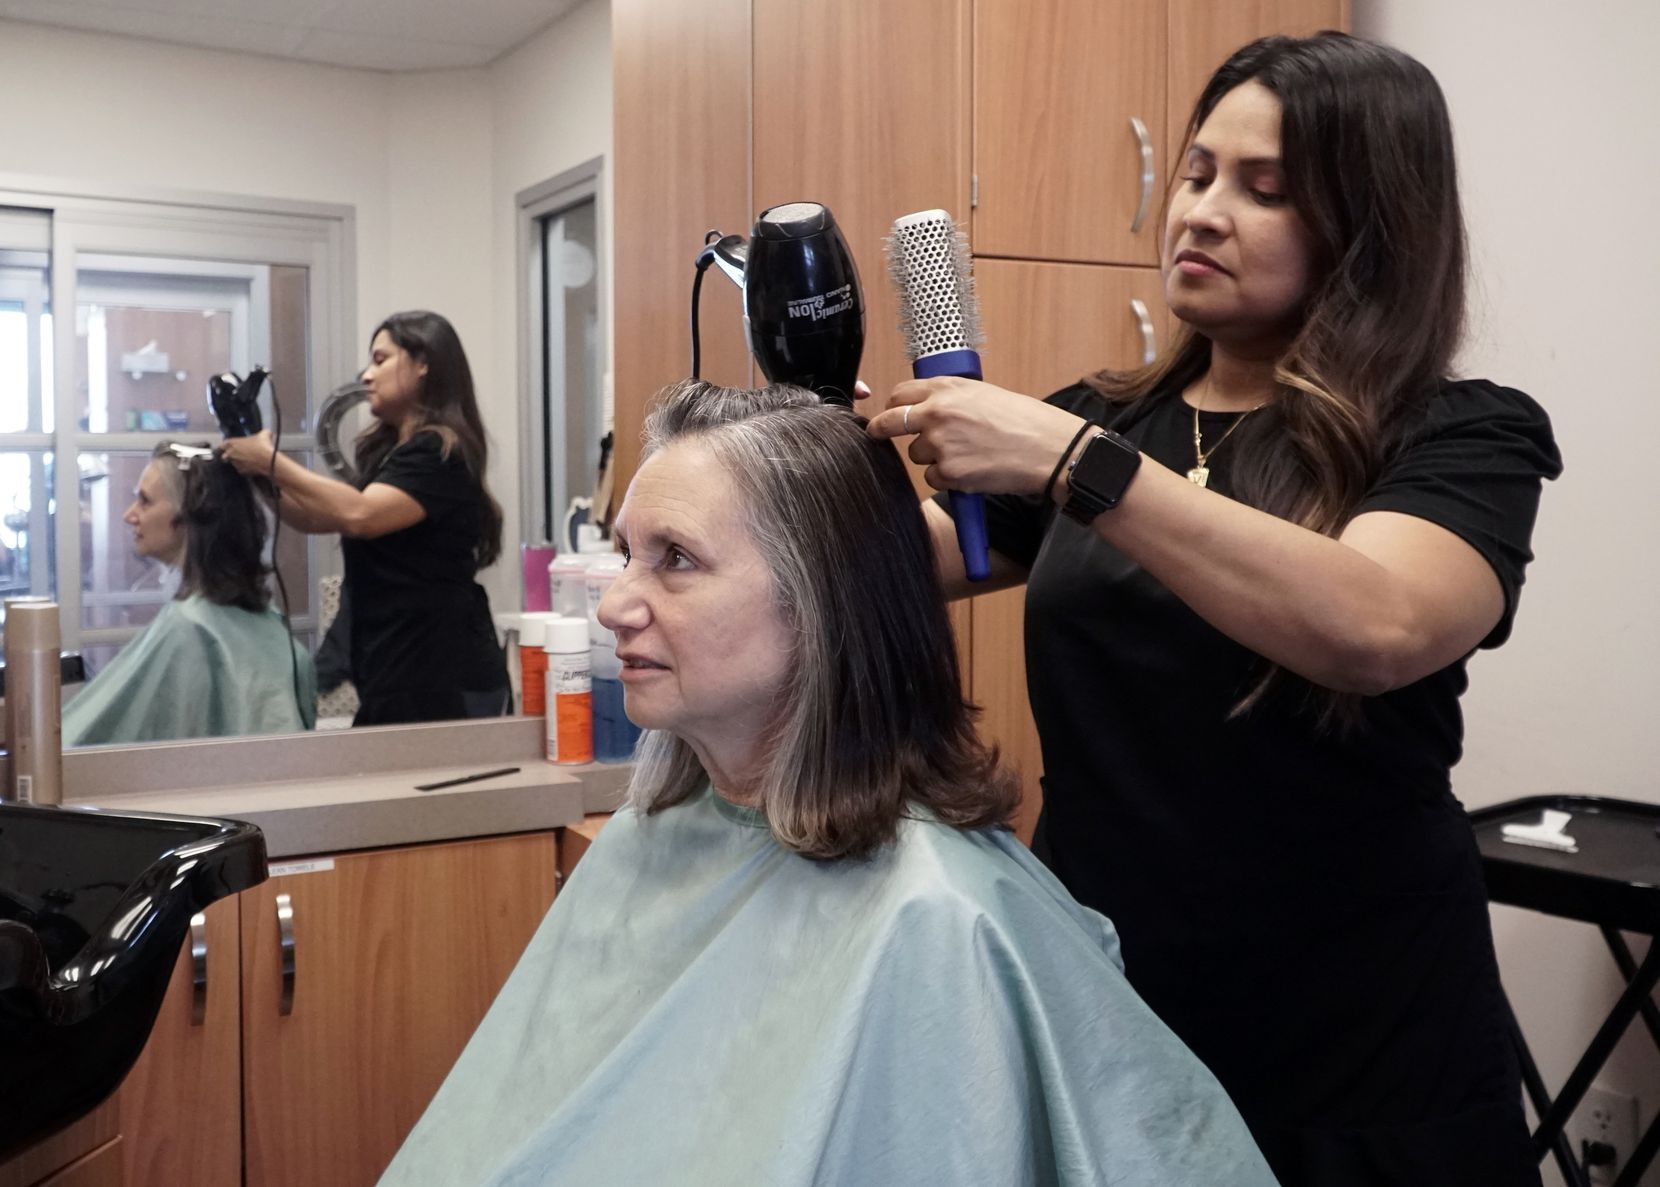 Hairstylist Veronica Vazquez helped Harriet Blake go gray gracefully by adding lowlights to diffuse and blend with the gray hair until it was fully grown out.